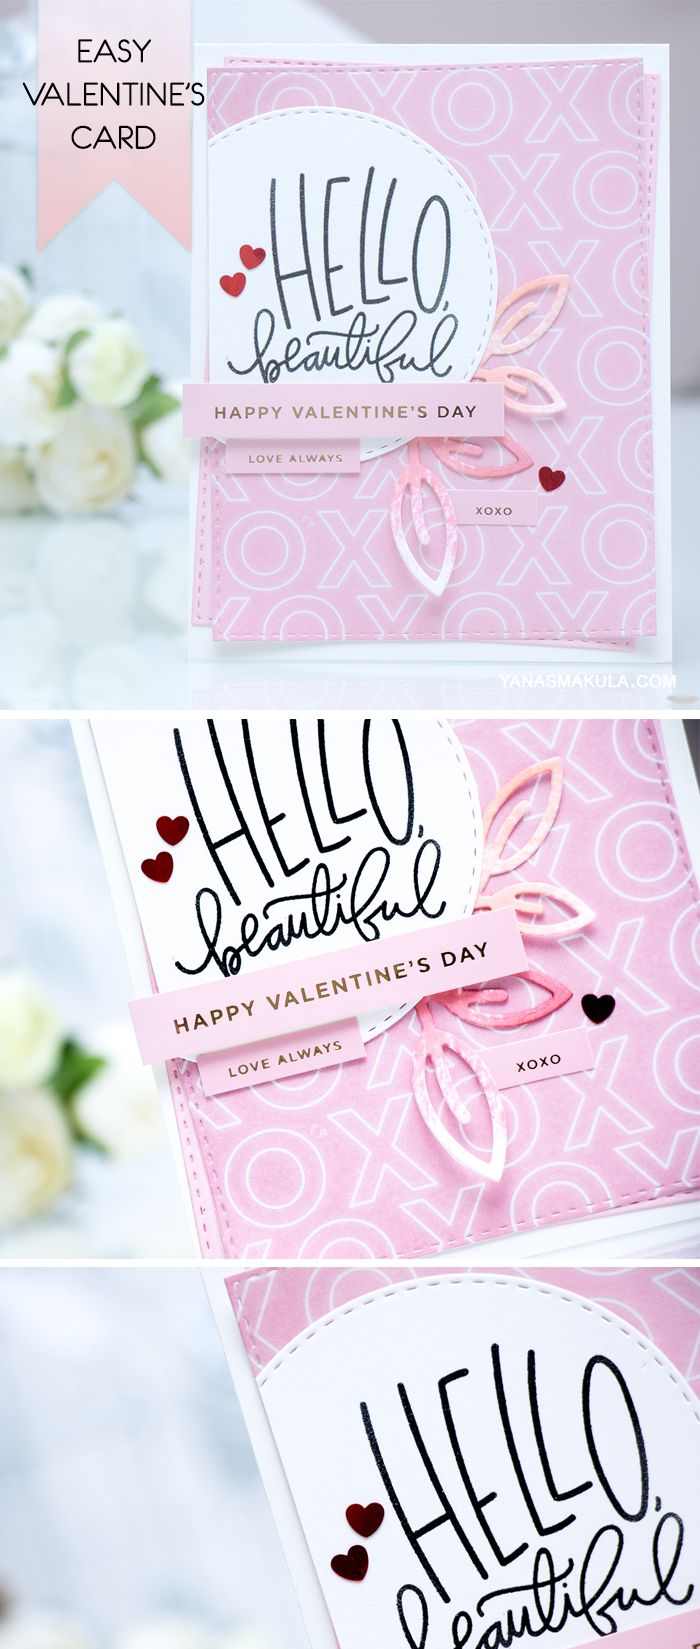 Create a beautiful Valentine's Day Card using dies and stamps from Simon Says Stamp. To see the details, visit http://www.yanasmakula.com/?p=52385